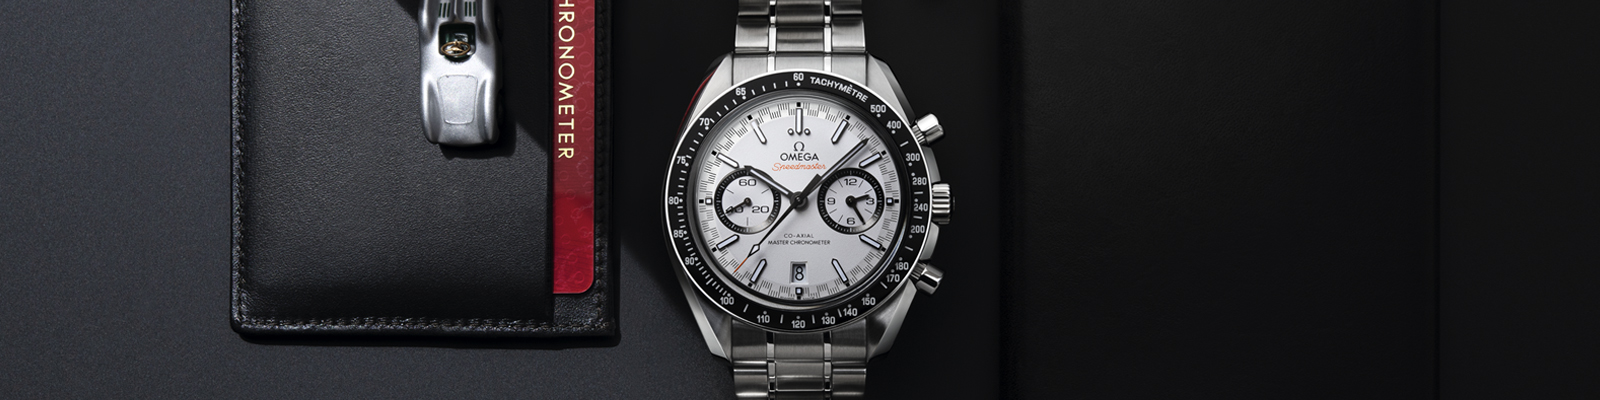 THE MASTER CHRONOMETER CERTIFICATION - Background